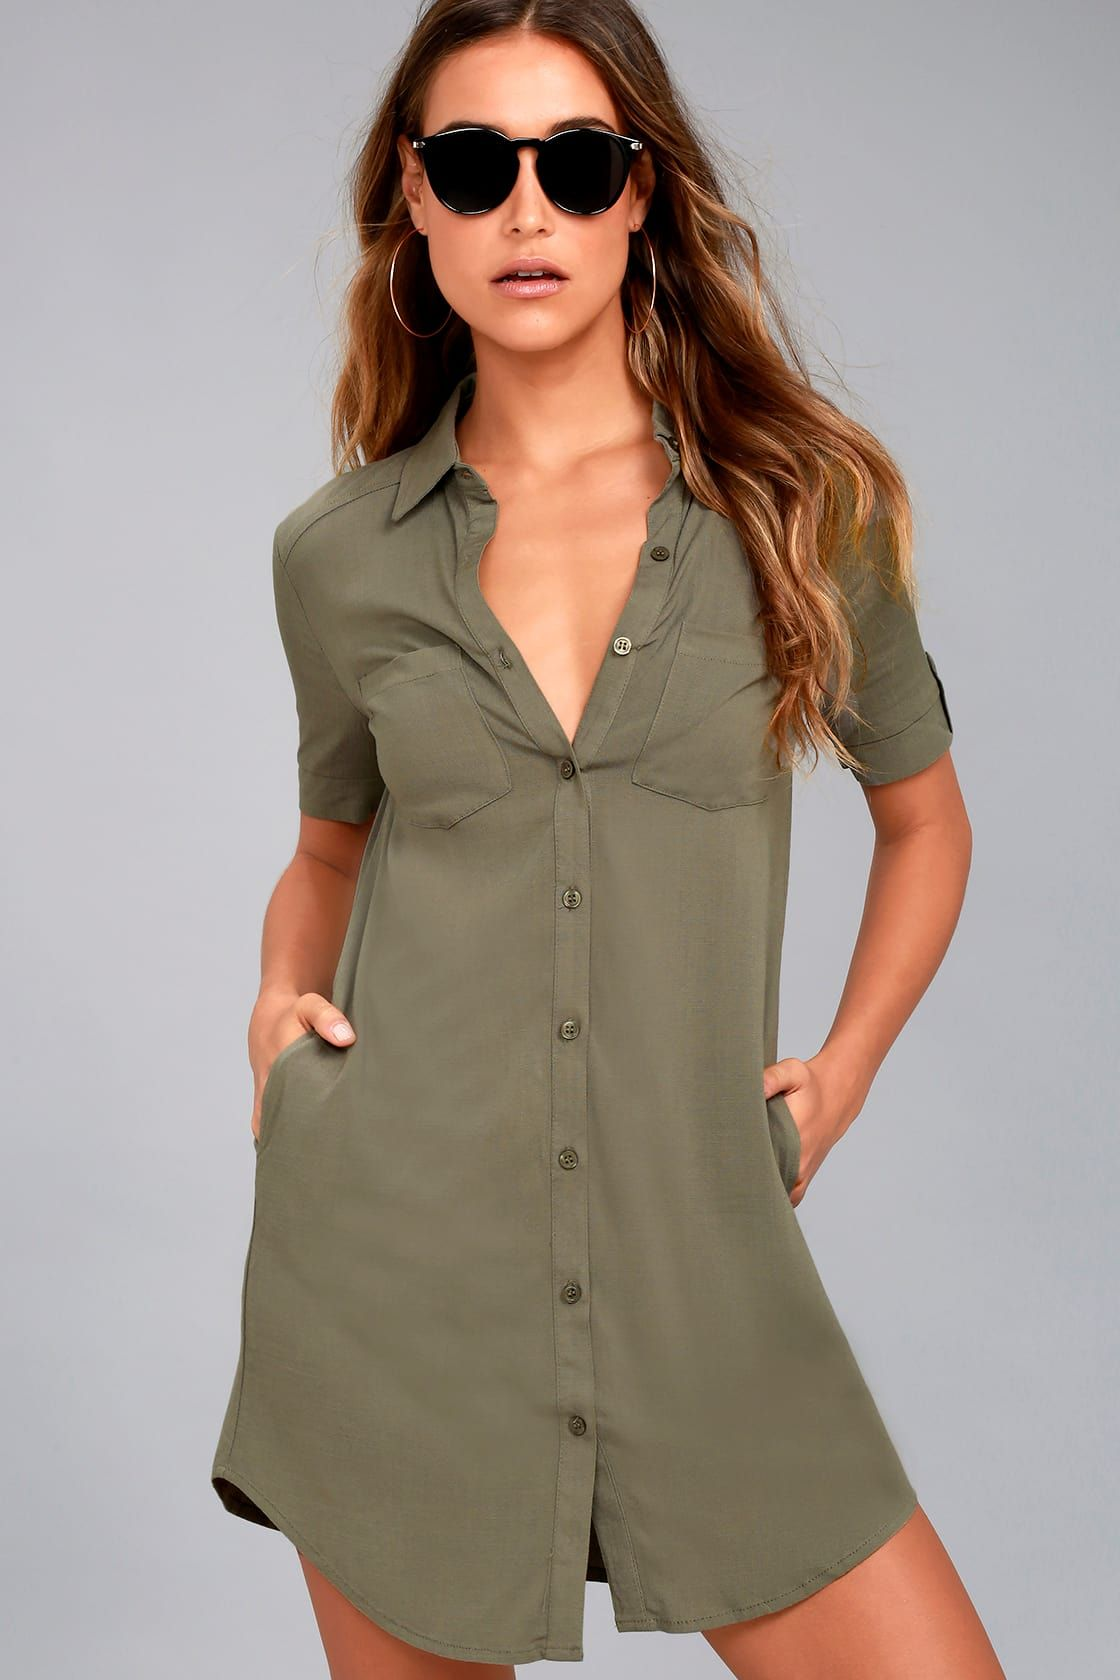 93d62818b Oxford Comma Olive Green Shirt Dress. Cute Olive Green Dress - Button-Up  Shirt Dress - Collared ...